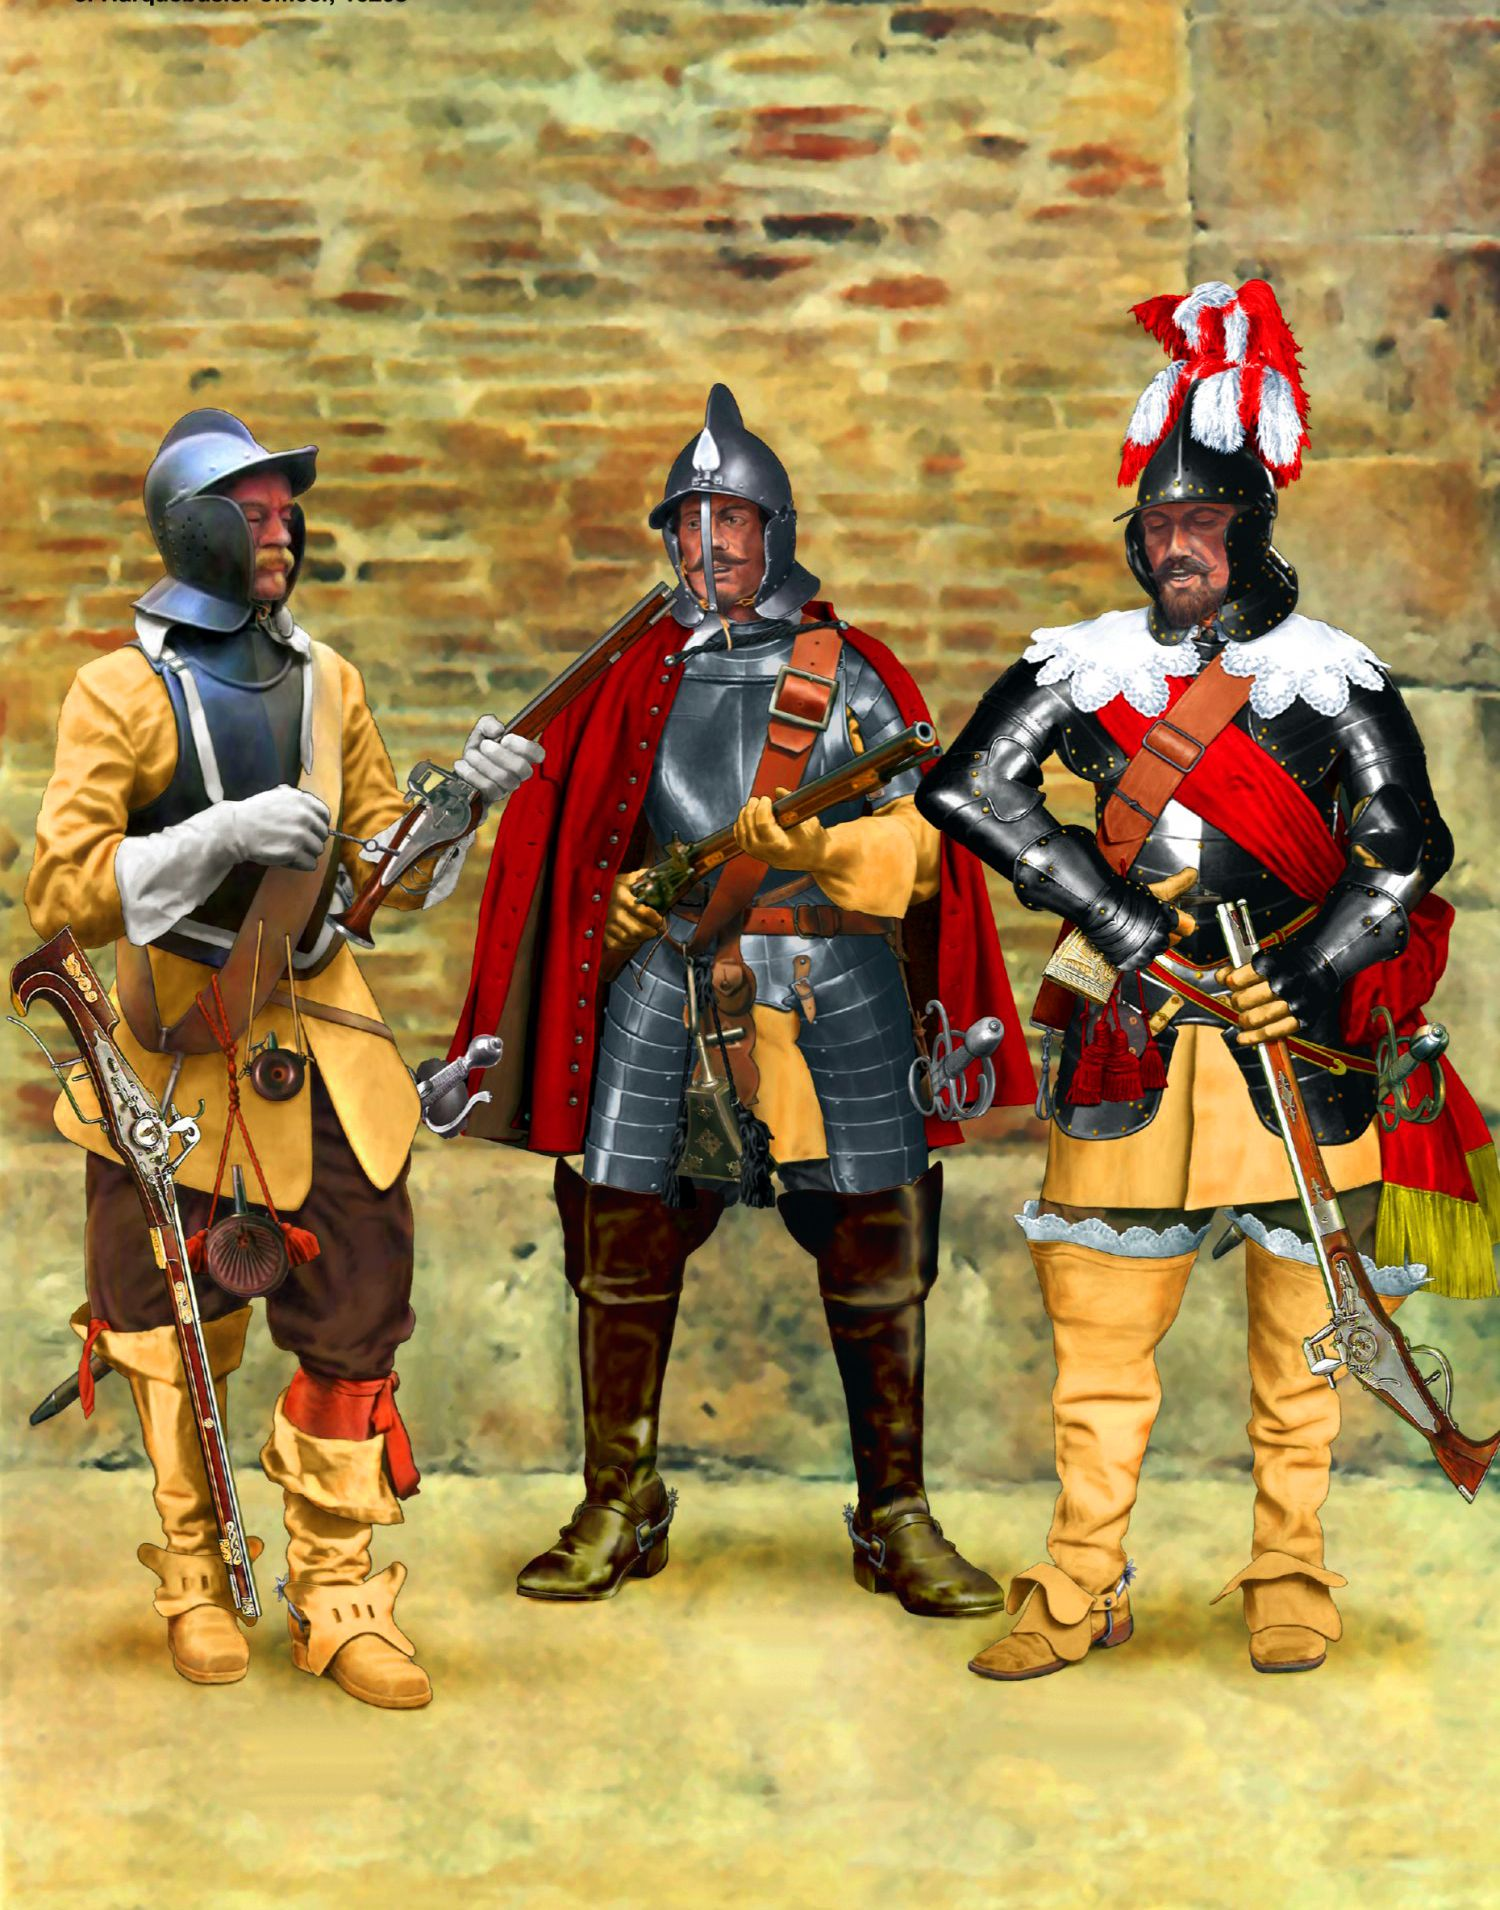 german musketeer thirty years war thirty years war art harquebusier officers thirty years war